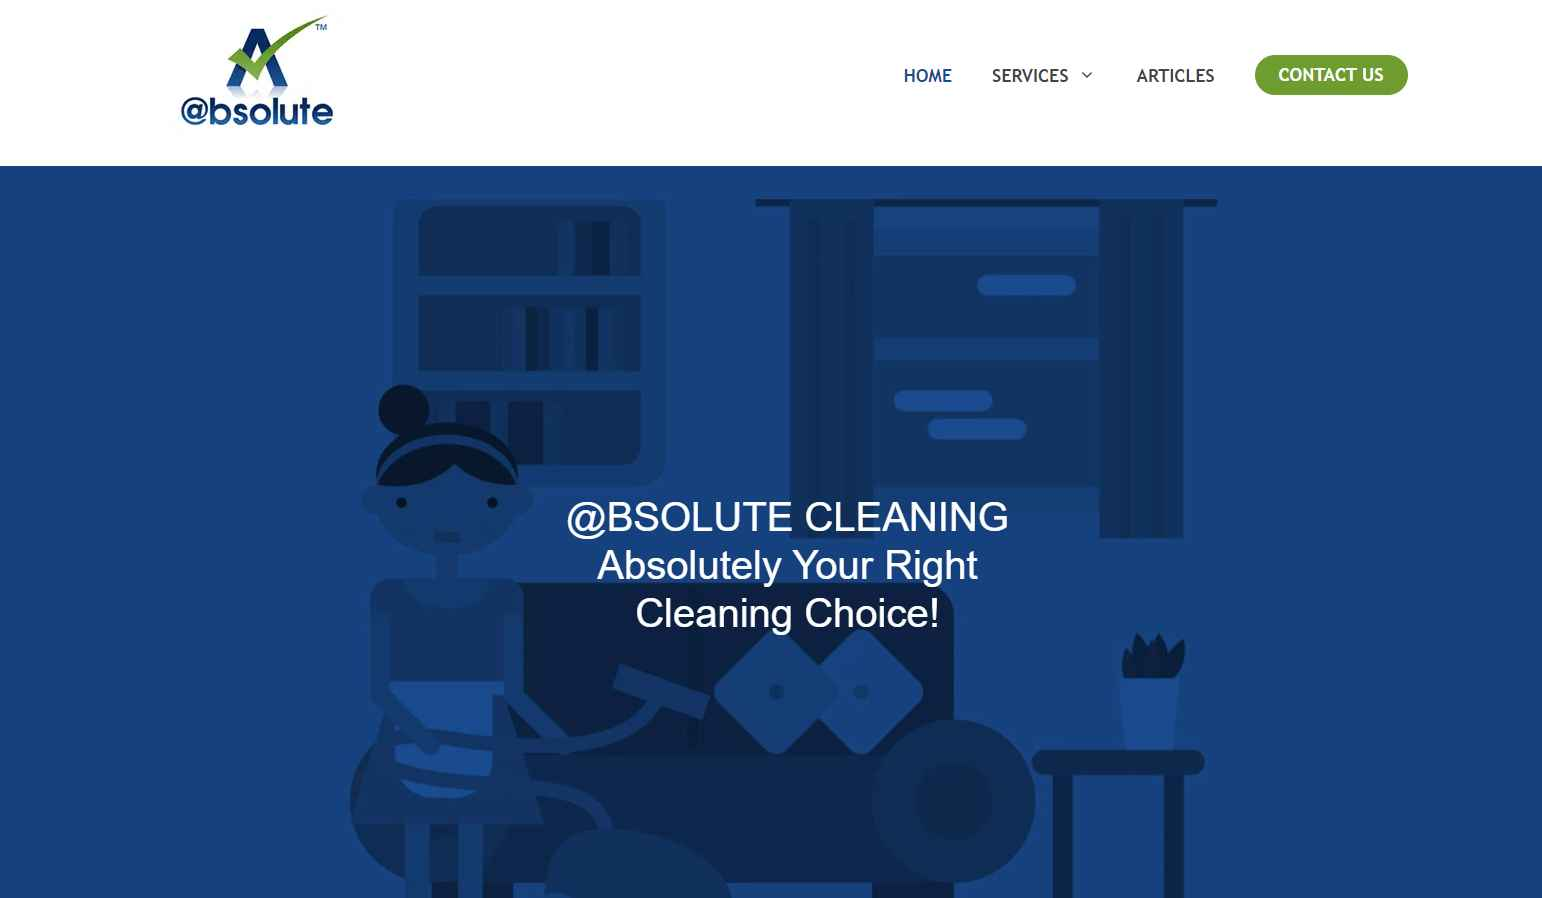 absolute cleaning Top Disinfection Service Providers in Singapore